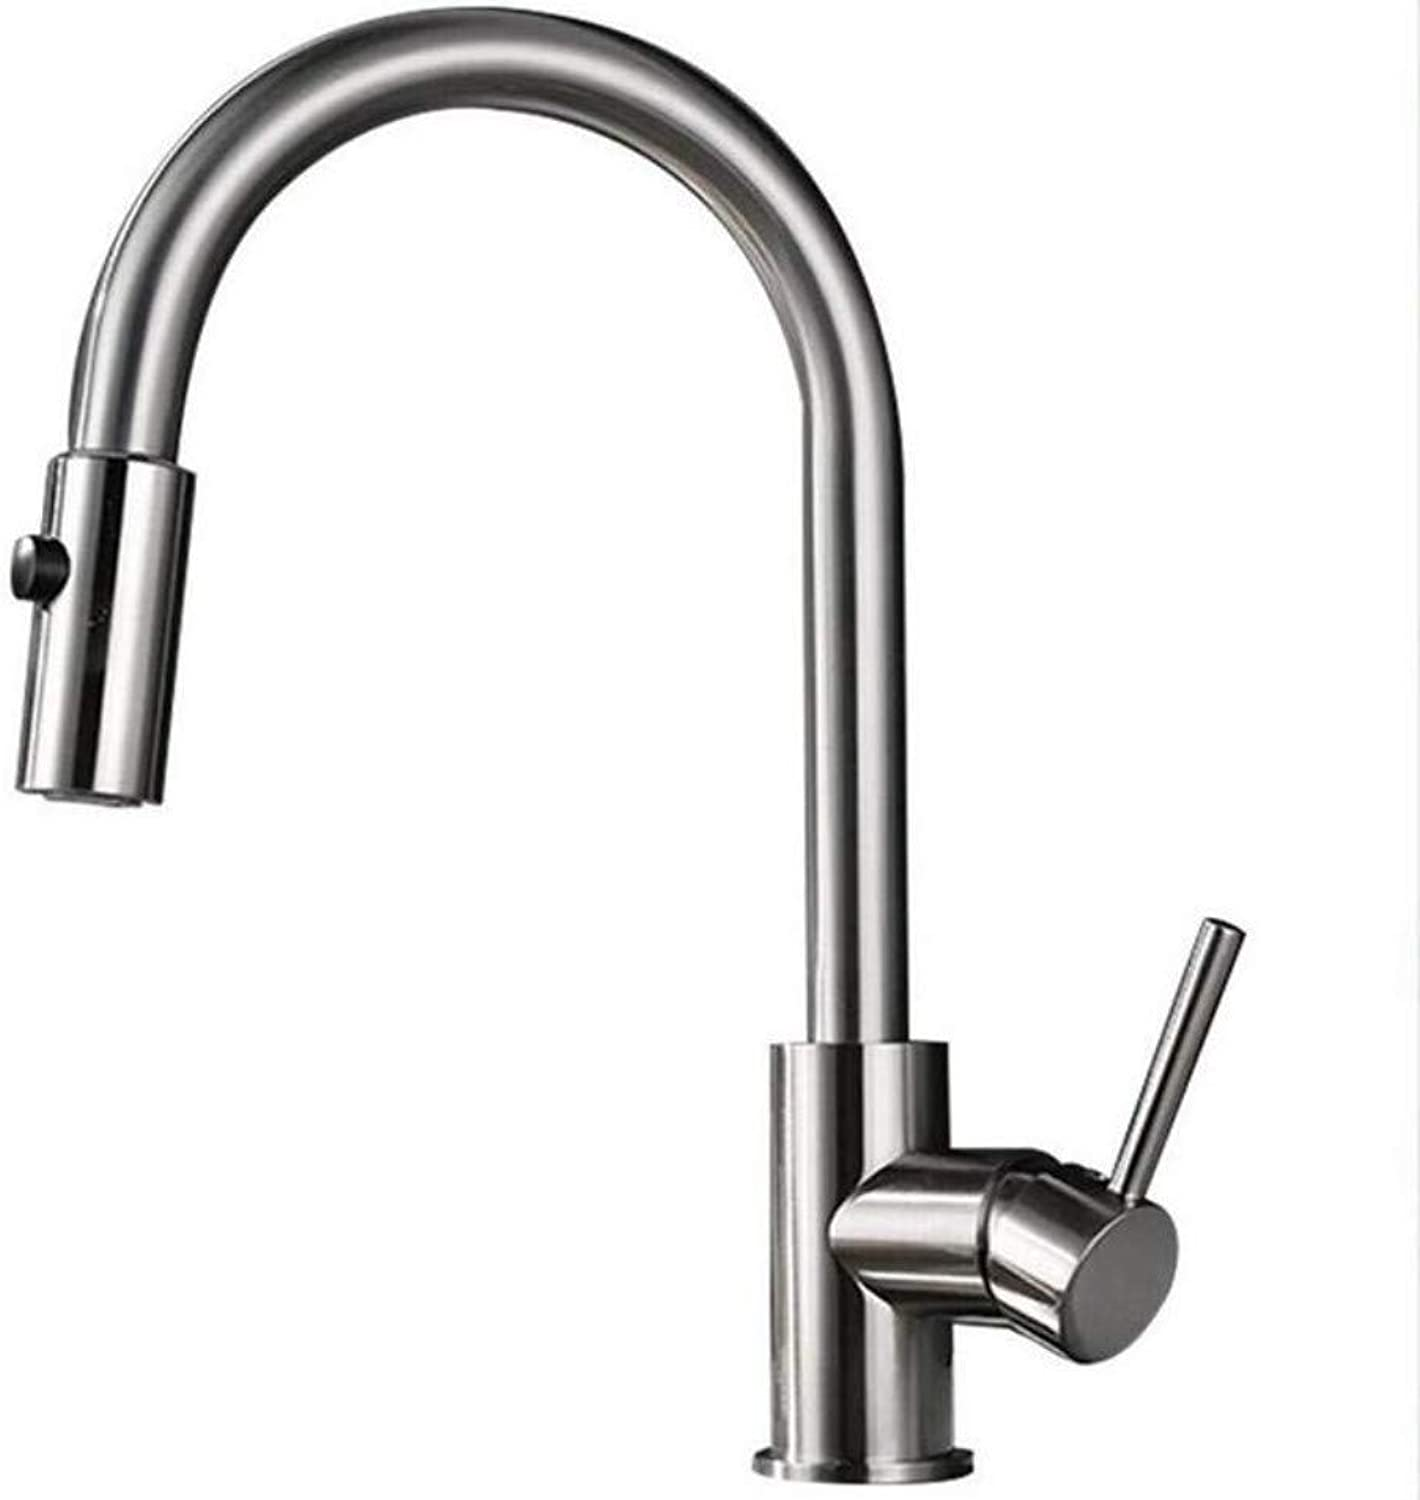 Kitchen Brass Retrobathroom Sink Taps All Copper Kitchen Faucet Cold and Hot Pull Out Faucet Sink Kitchen Faucet